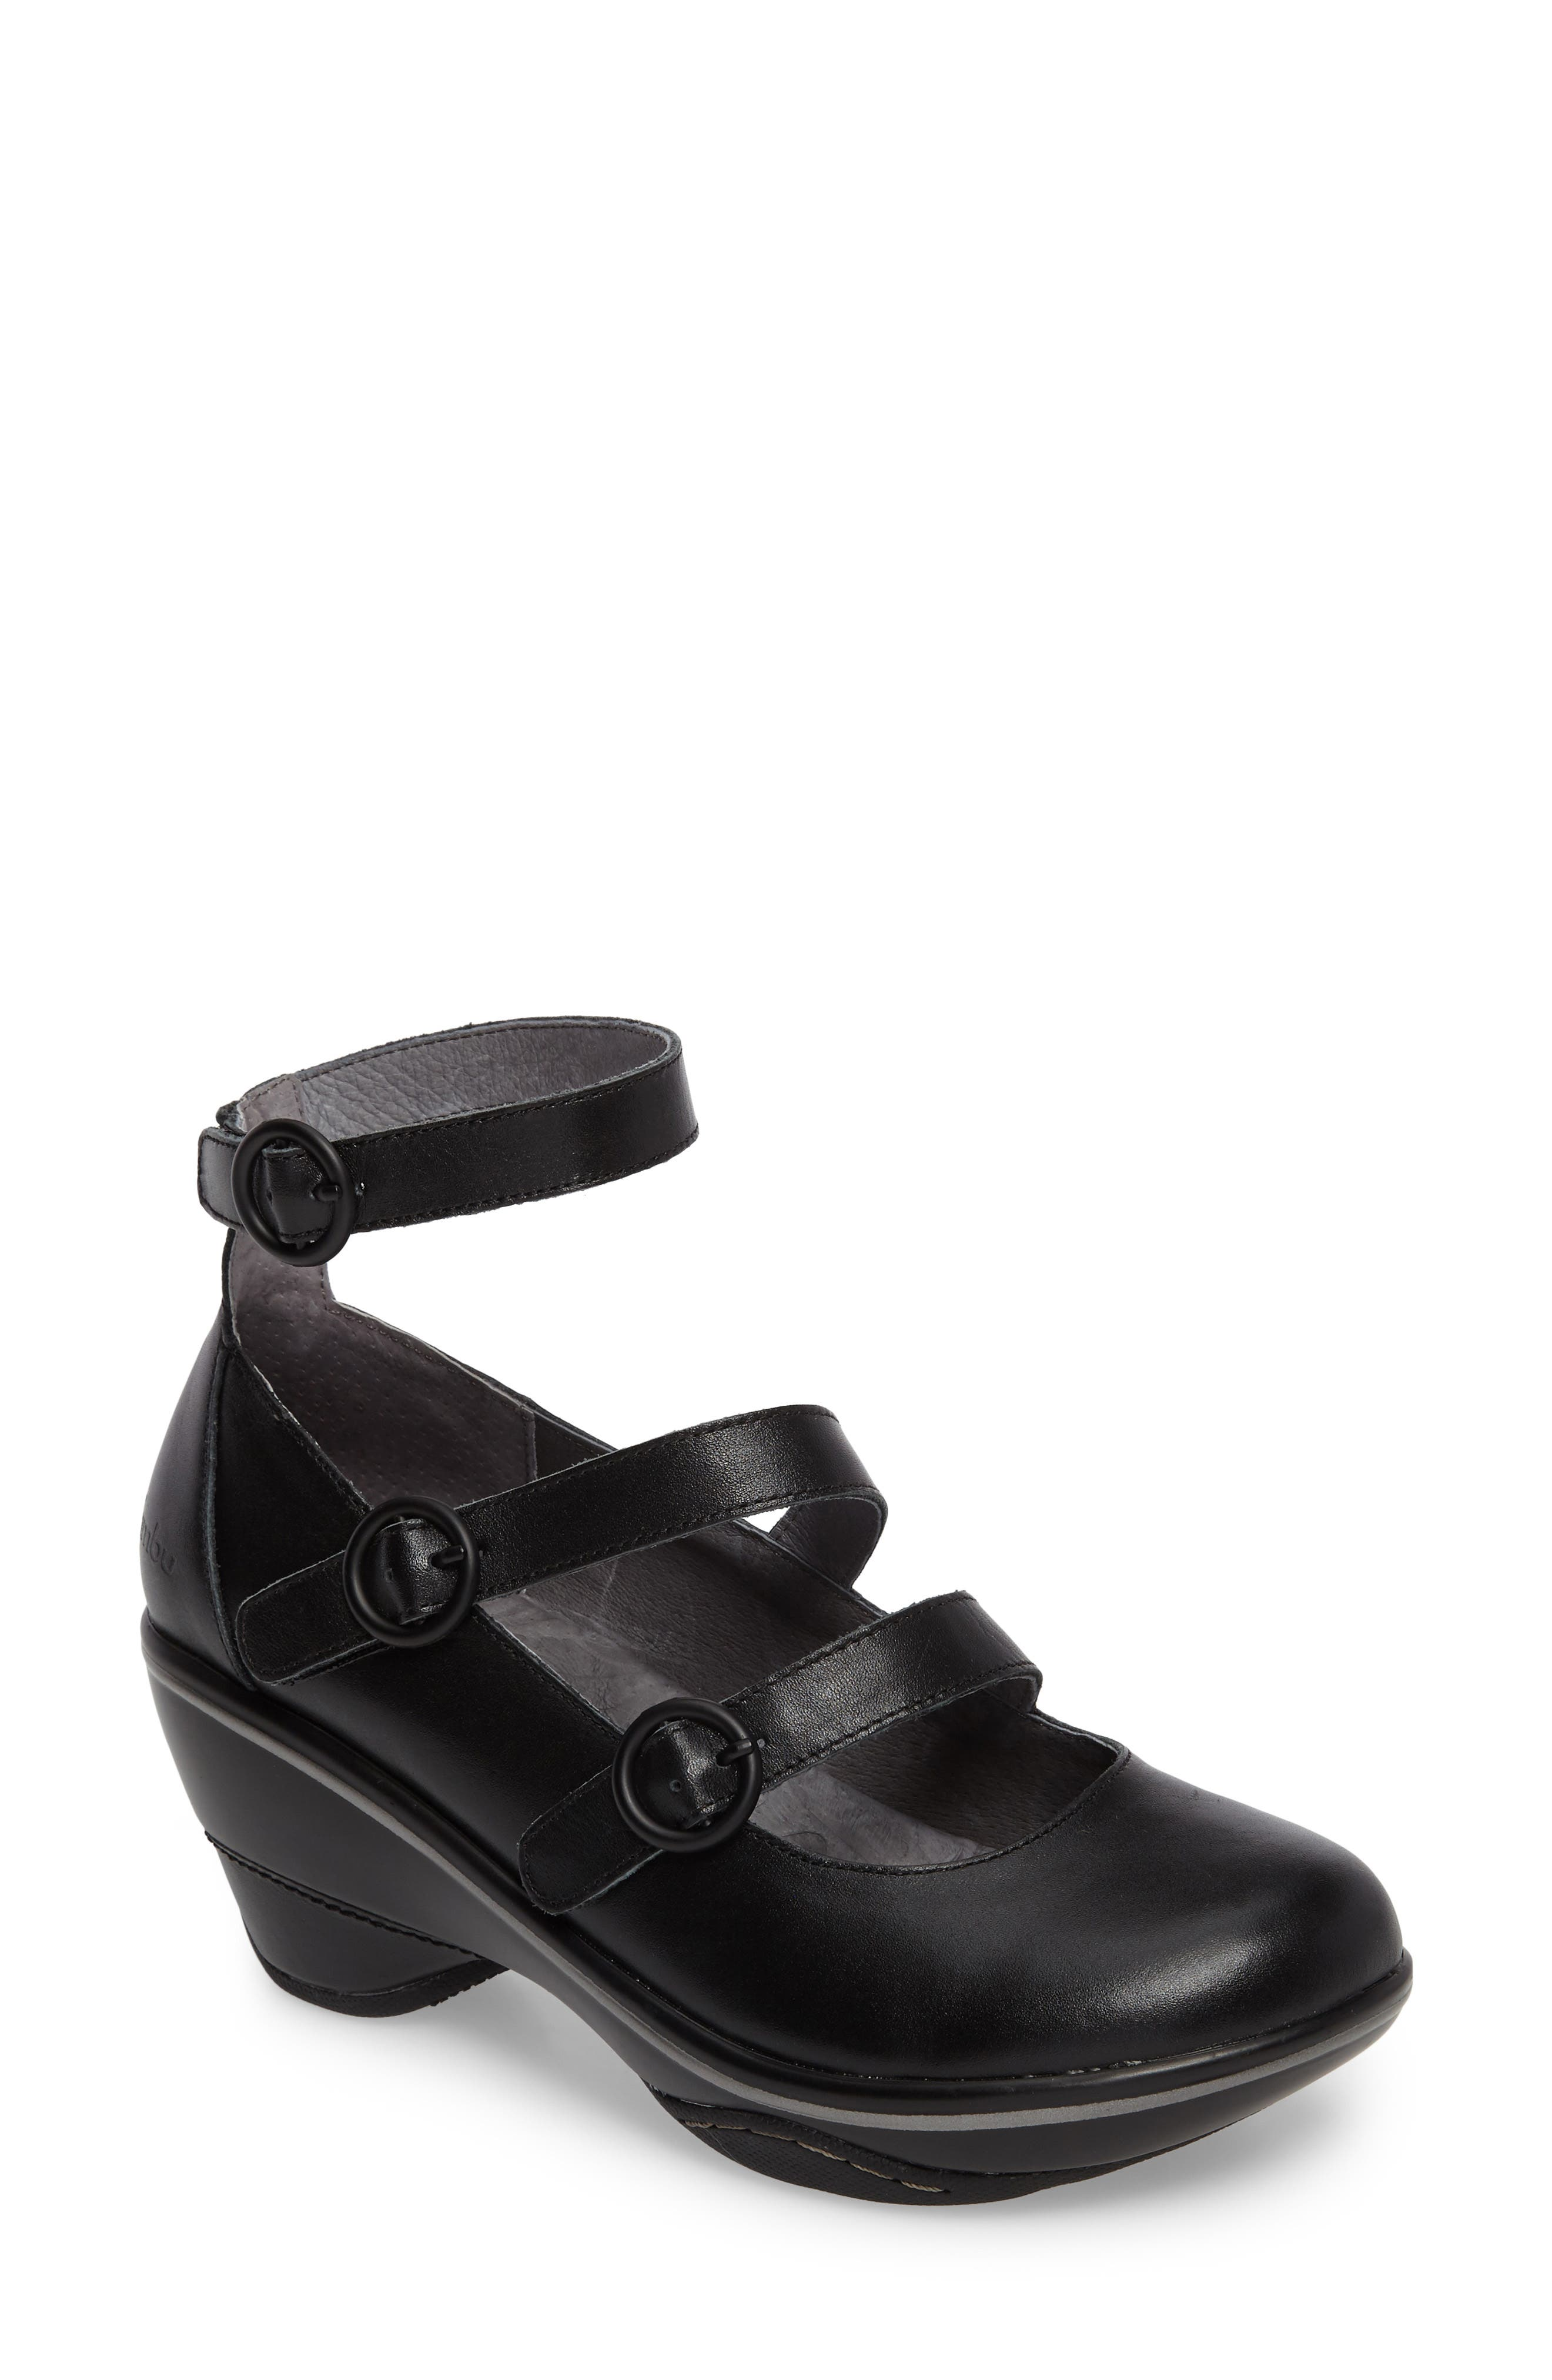 Alternate Image 1 Selected - Jambu Penelope Triple Strap Pump (Women)